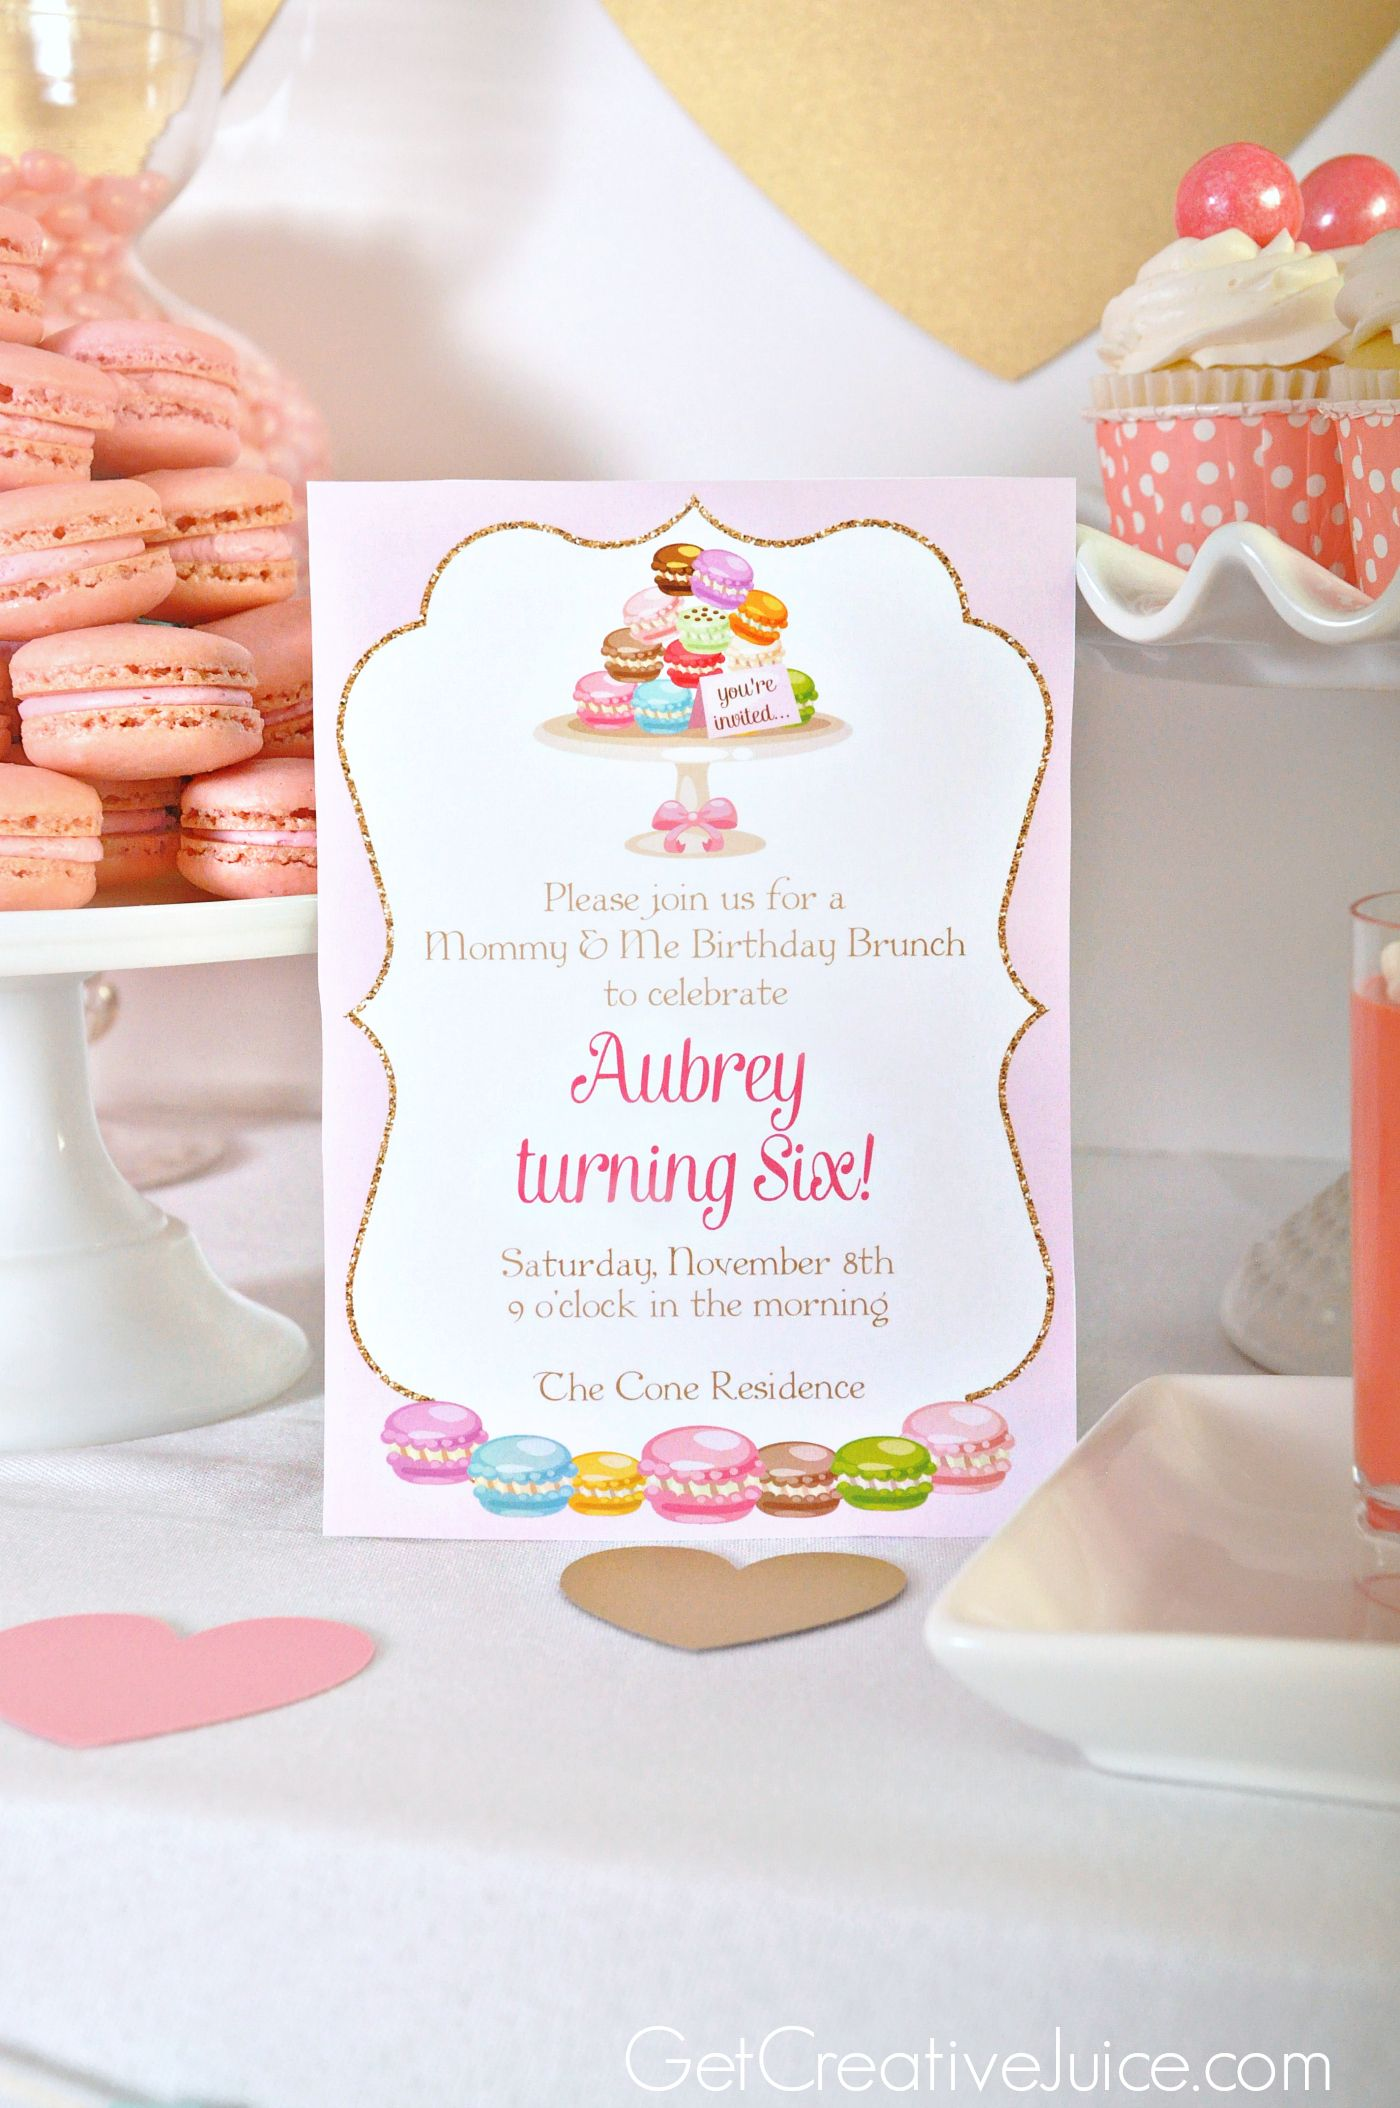 Aubrey is 6! Pink & Gold Macaron Party Gold macarons